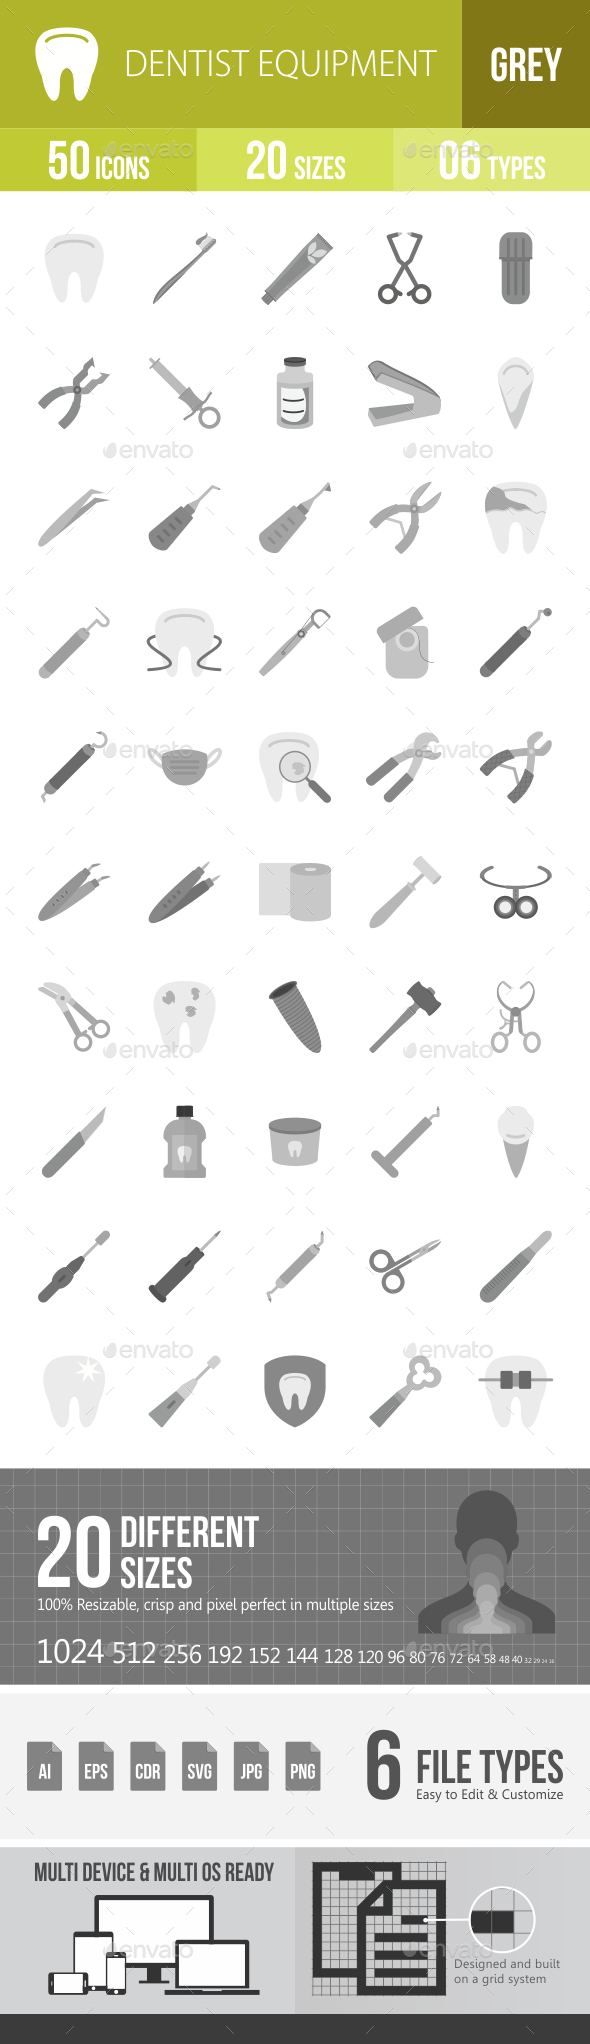 Dentist Equipment Greyscale Icons - Icons